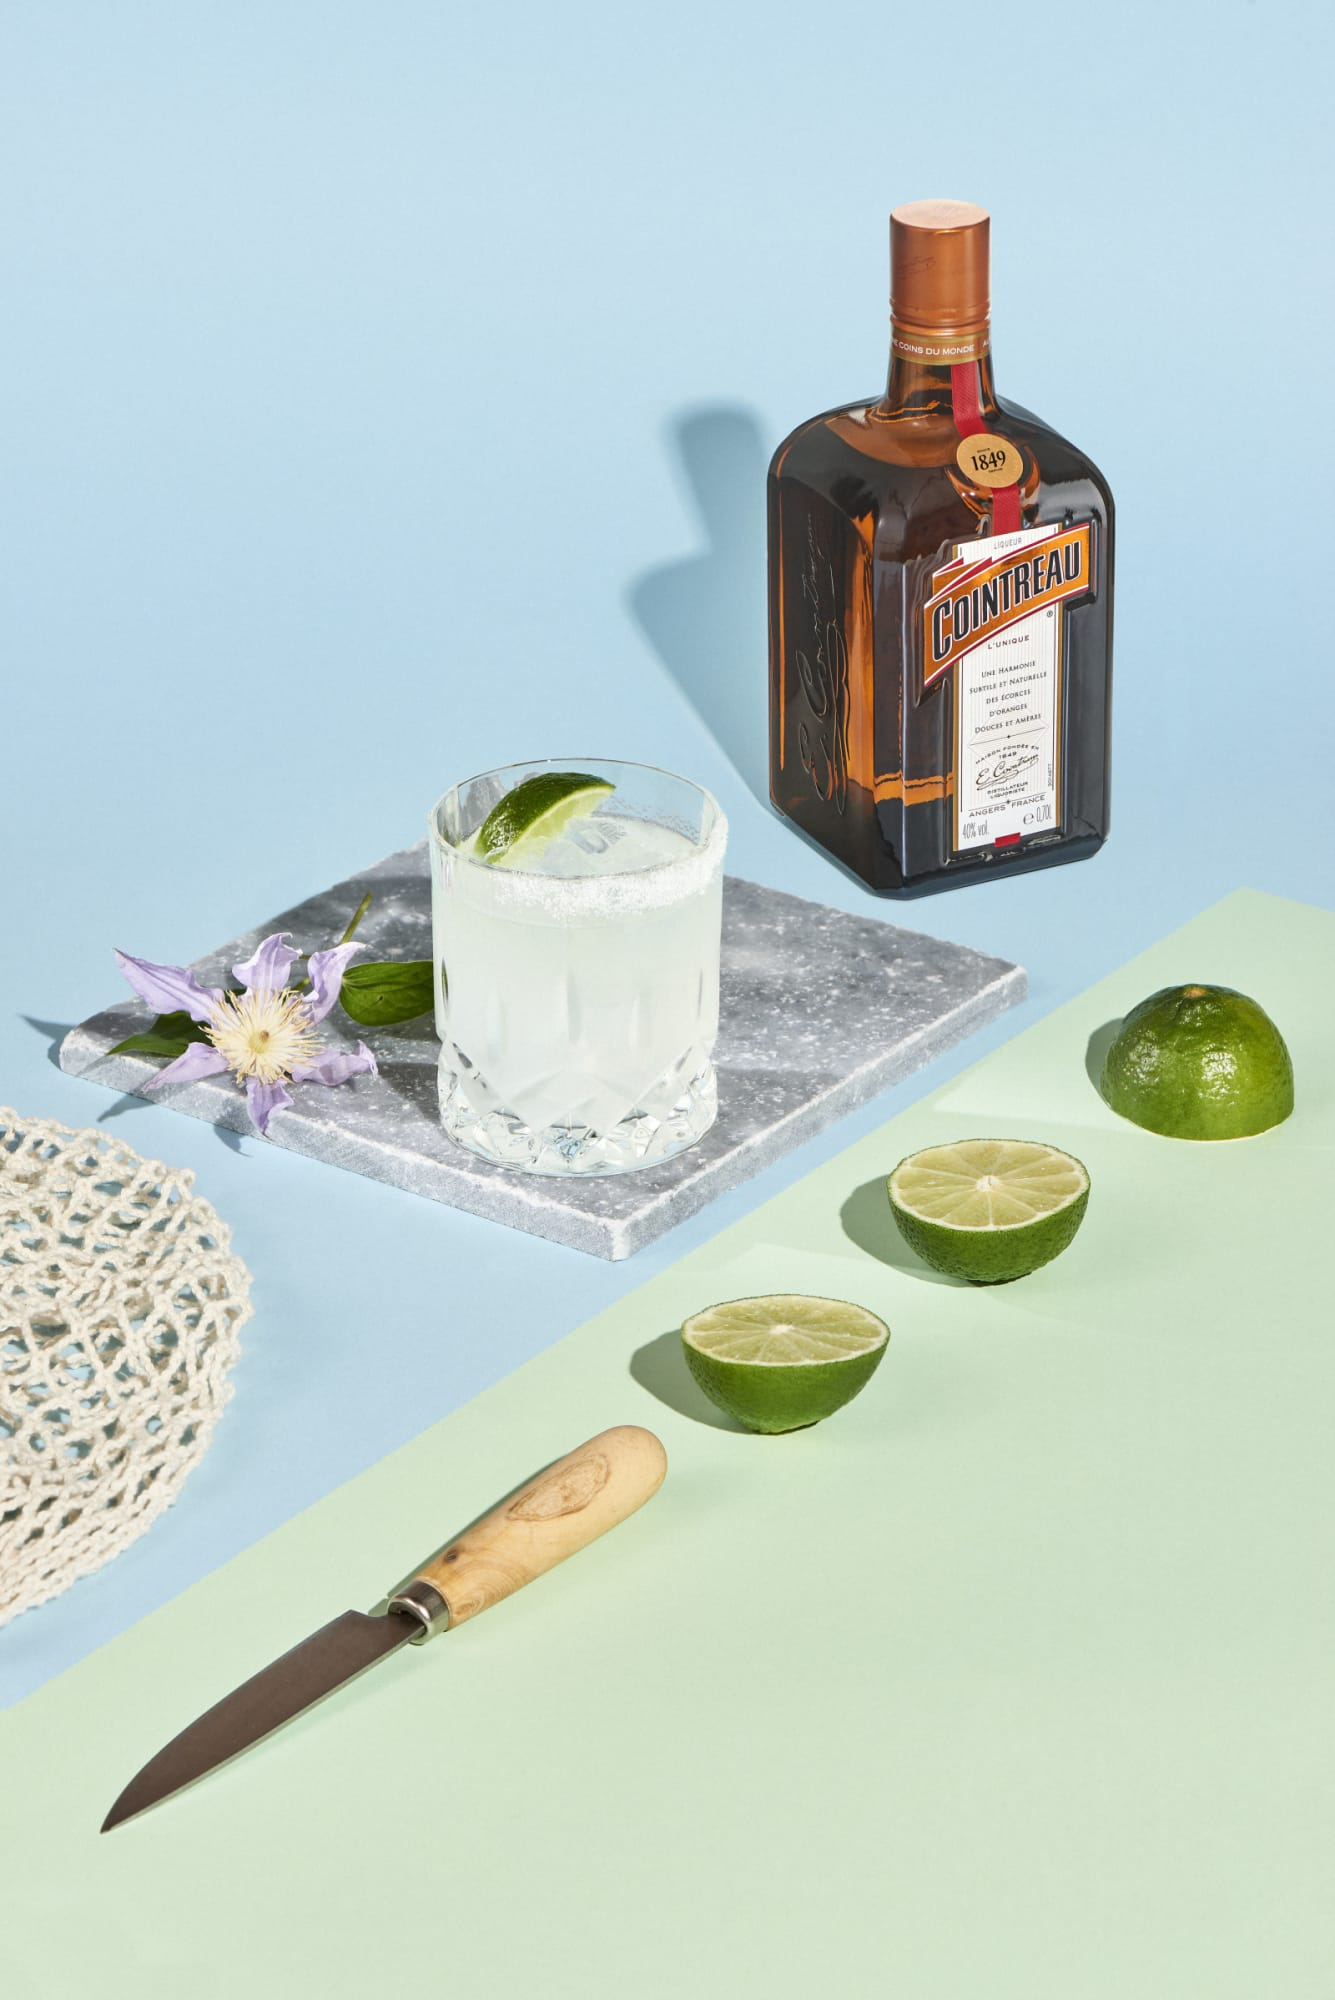 The Botanist Gin And Cointreau Come Up With Cocktail Recipes Perfect For Summer Fun photo